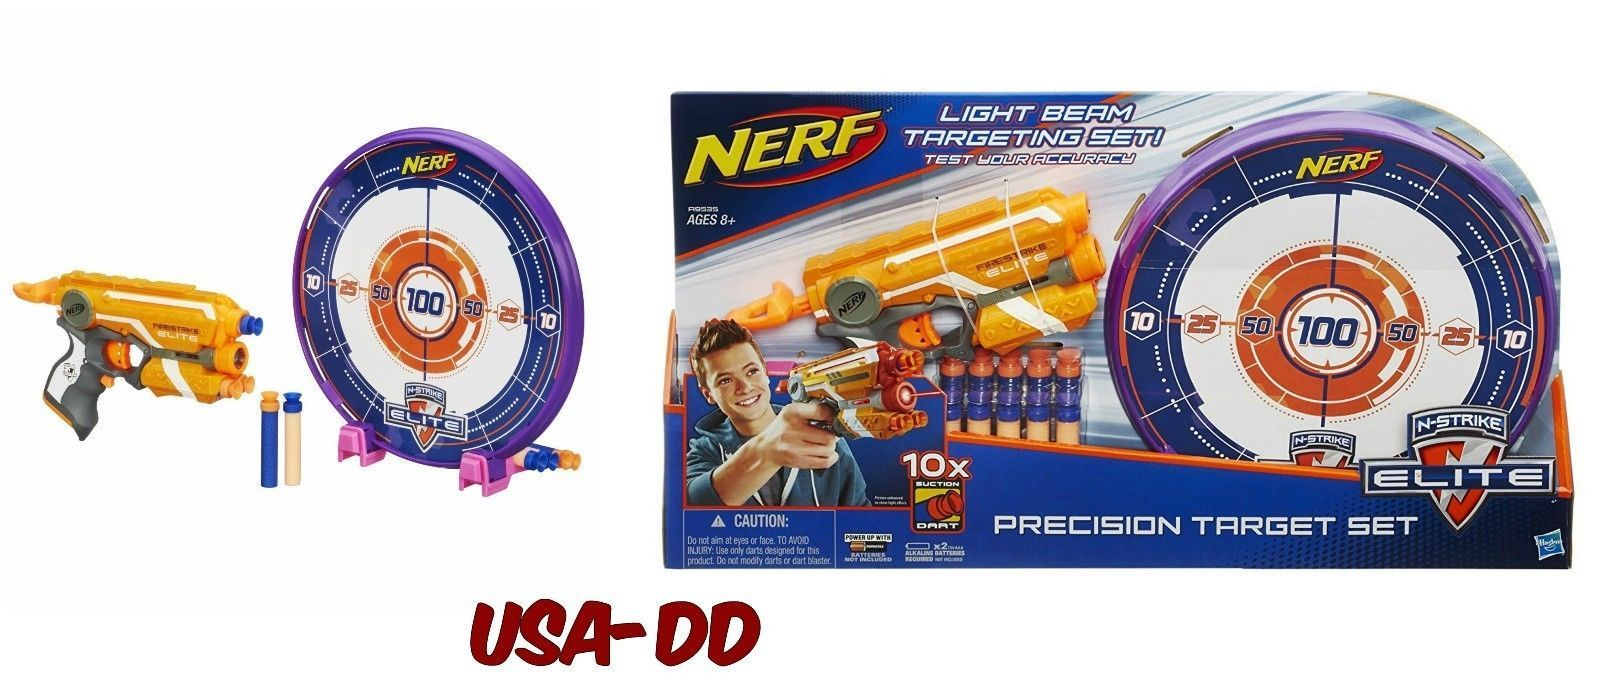 Toys for kids 8 and up  Toys For Boys  And Up Sports Kids Age  Gun Nerf Blaster Machine